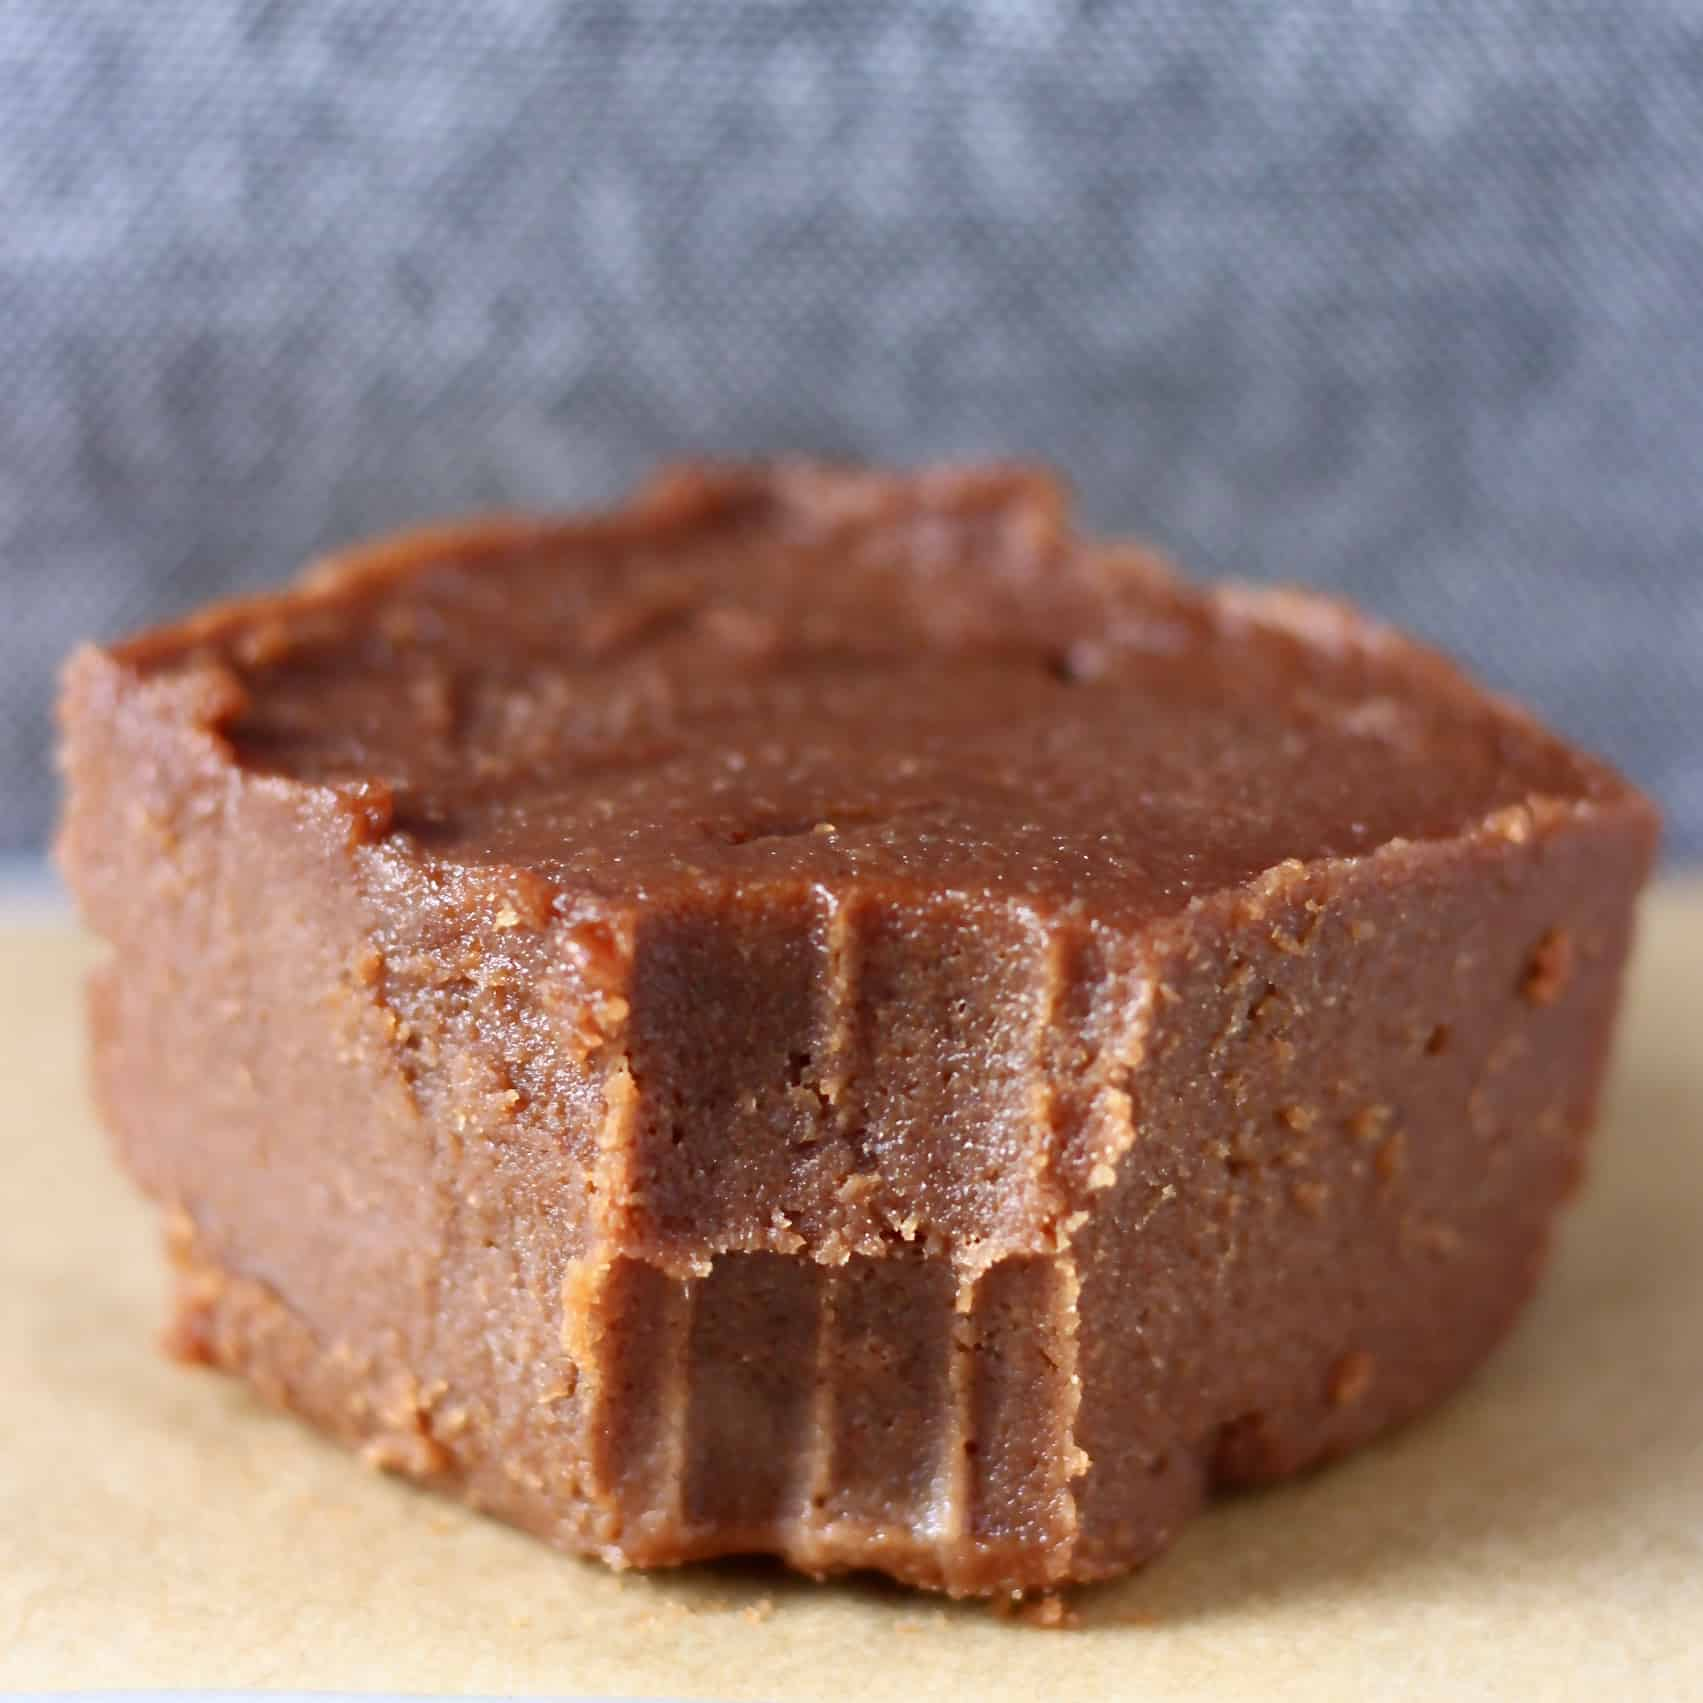 Photo of a square of chocolate fudge with a bite taken out of it on a piece of brown baking paper against a grey background